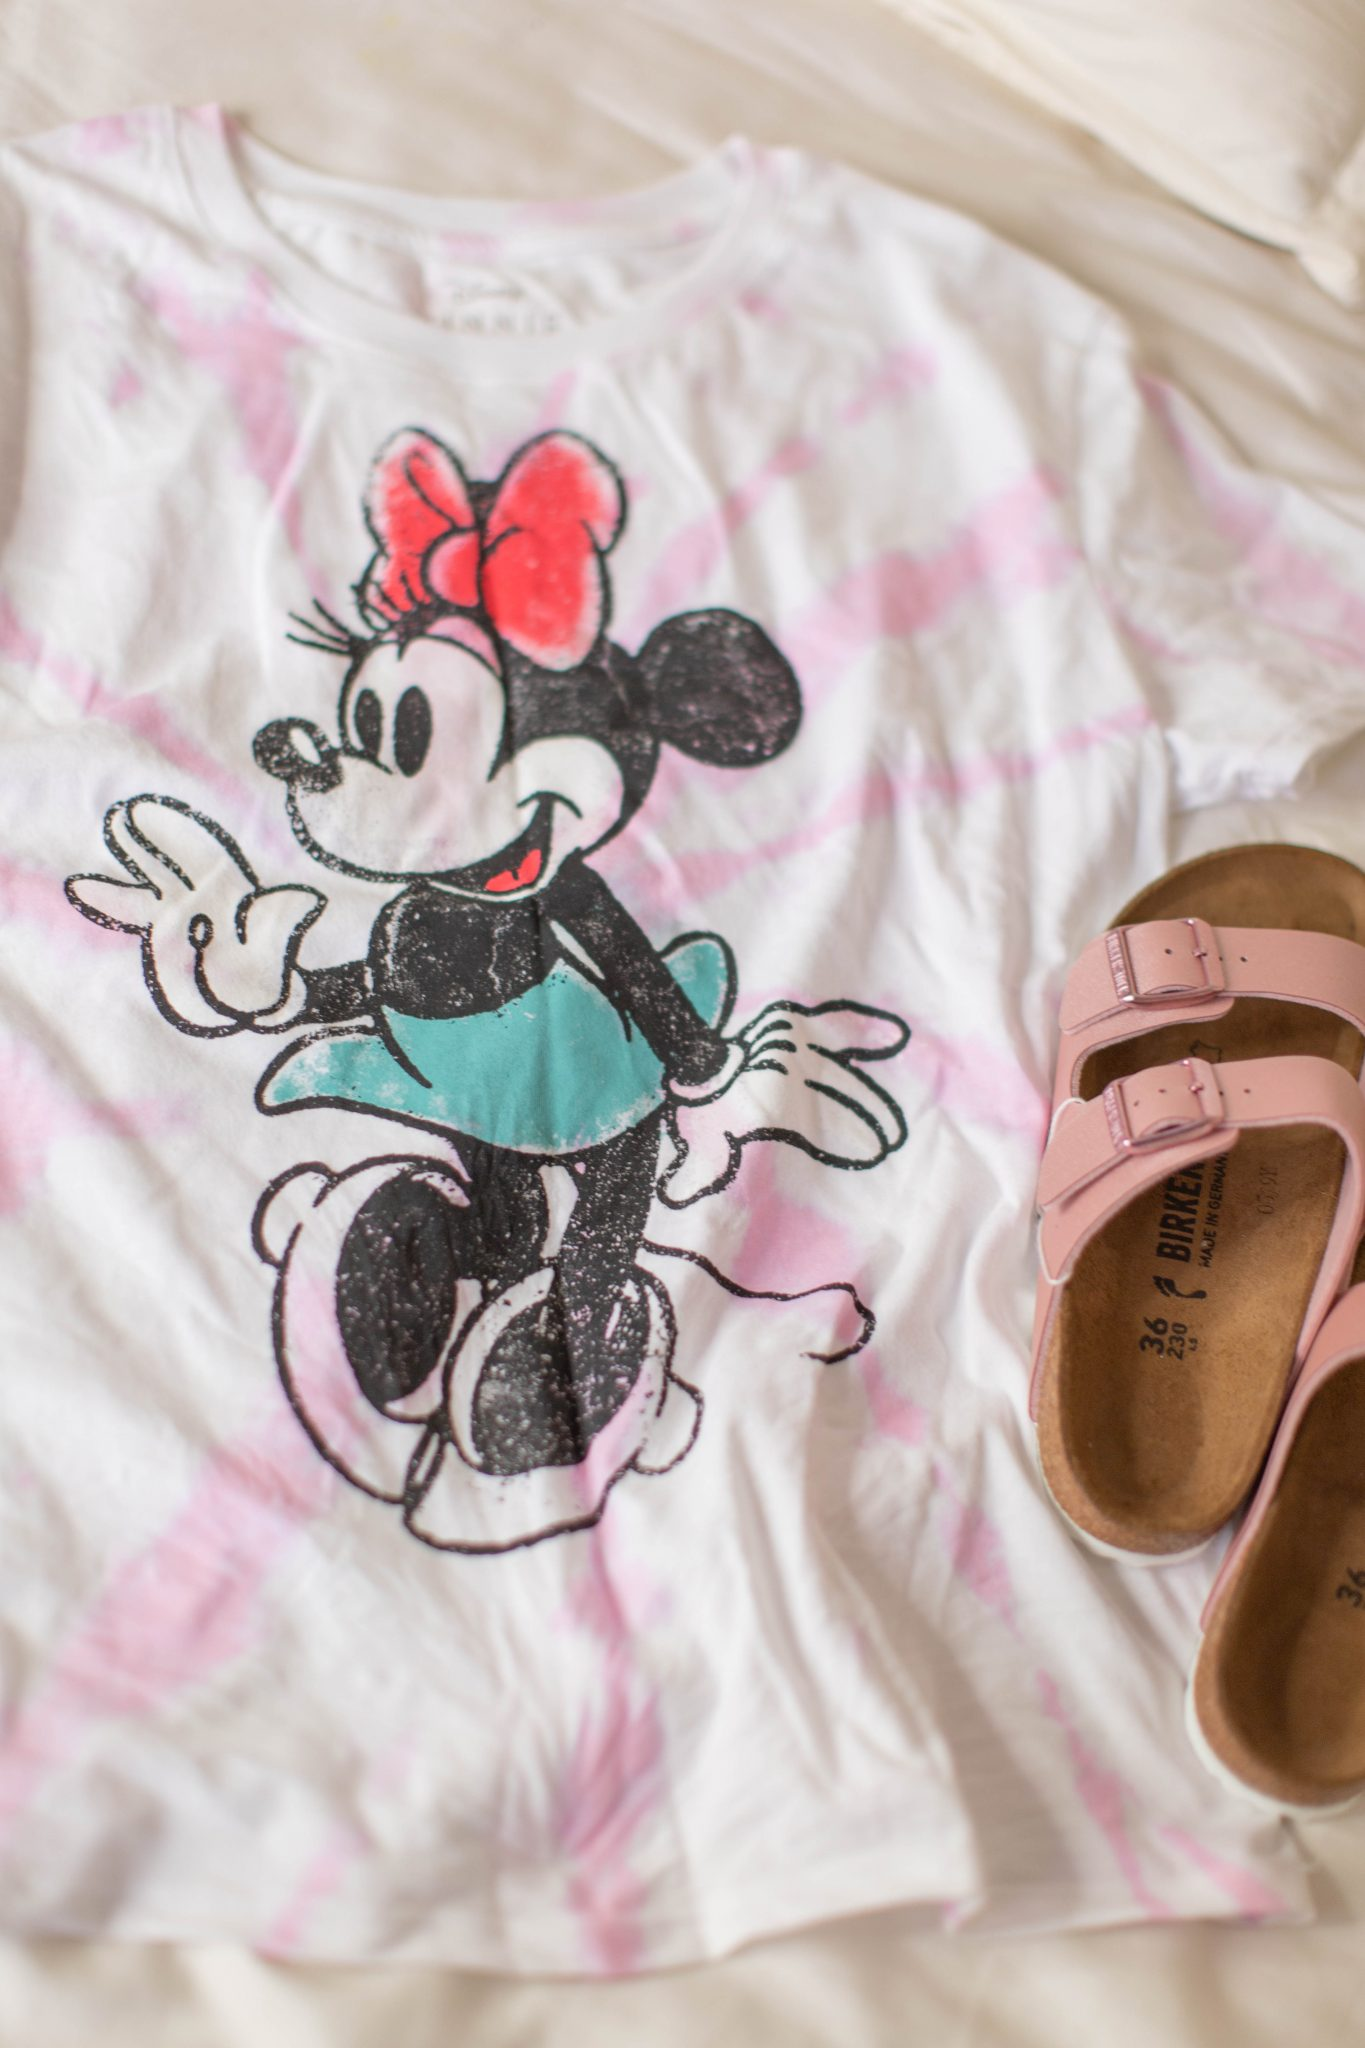 Recent Fashion and Beauty Finds by popular NYC life and style blog, Live Laugh Linda: image of Target tie dye Minnie Disney tee and birkenstocks